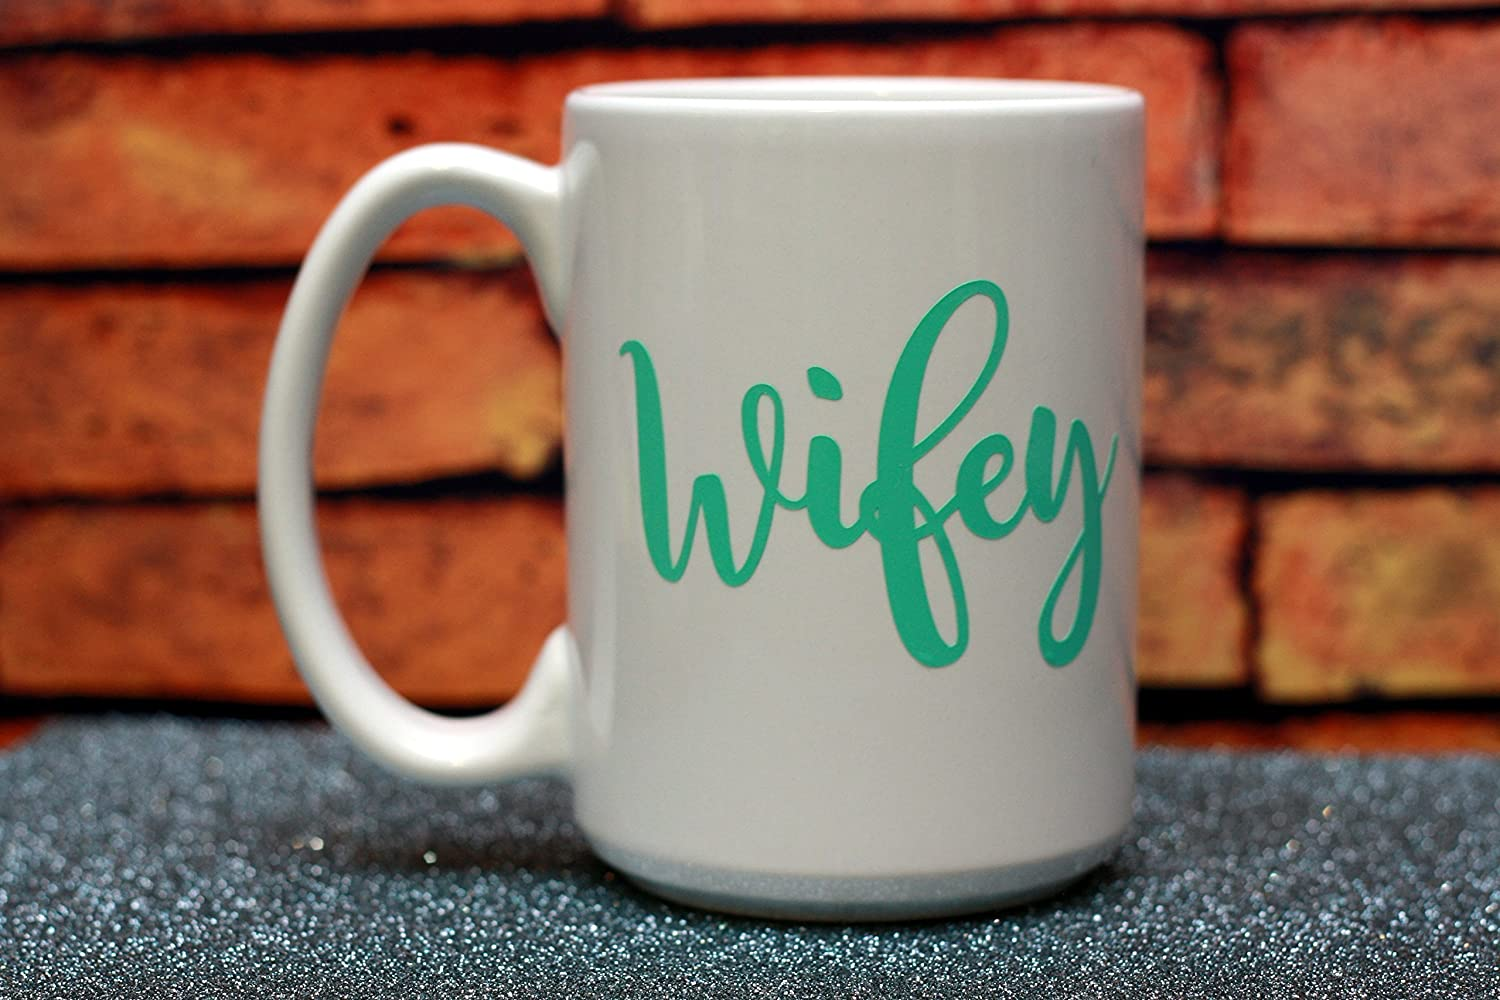 Hubby Wifey Custom Couple Mug Set